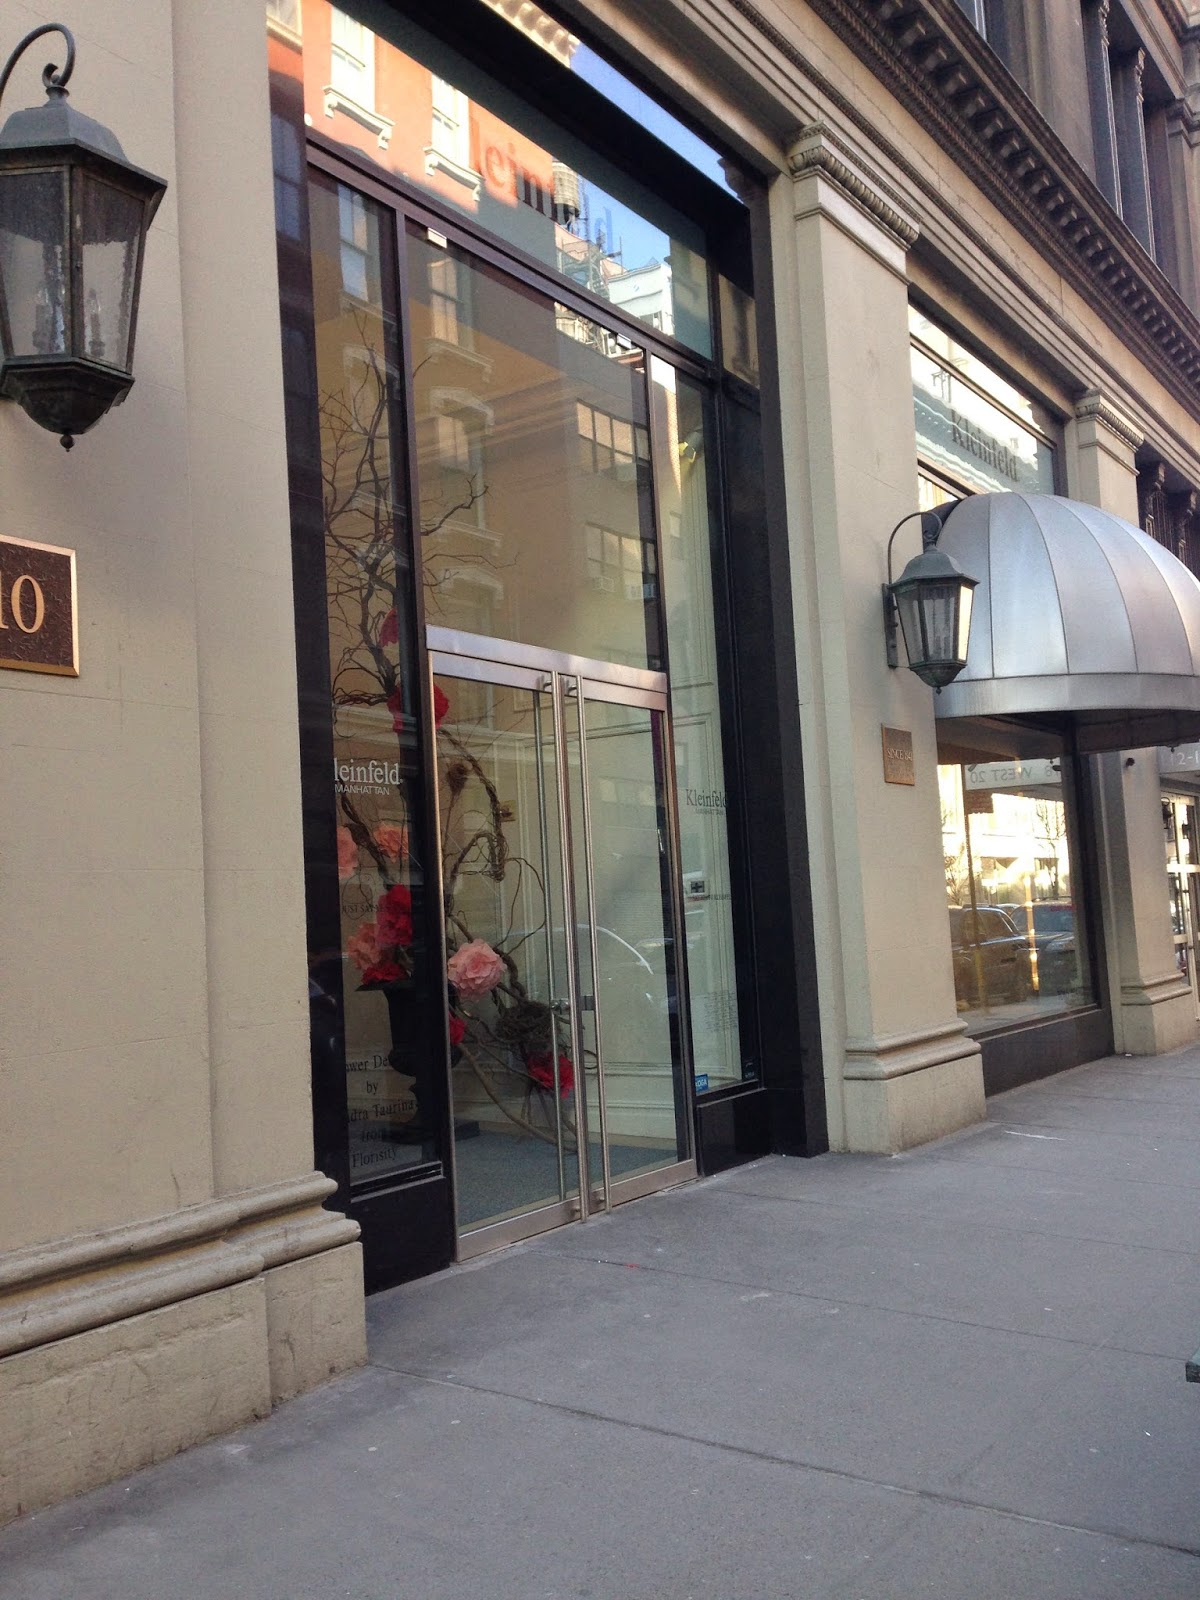 Entrance of Kleinfeld Bridal Boutique